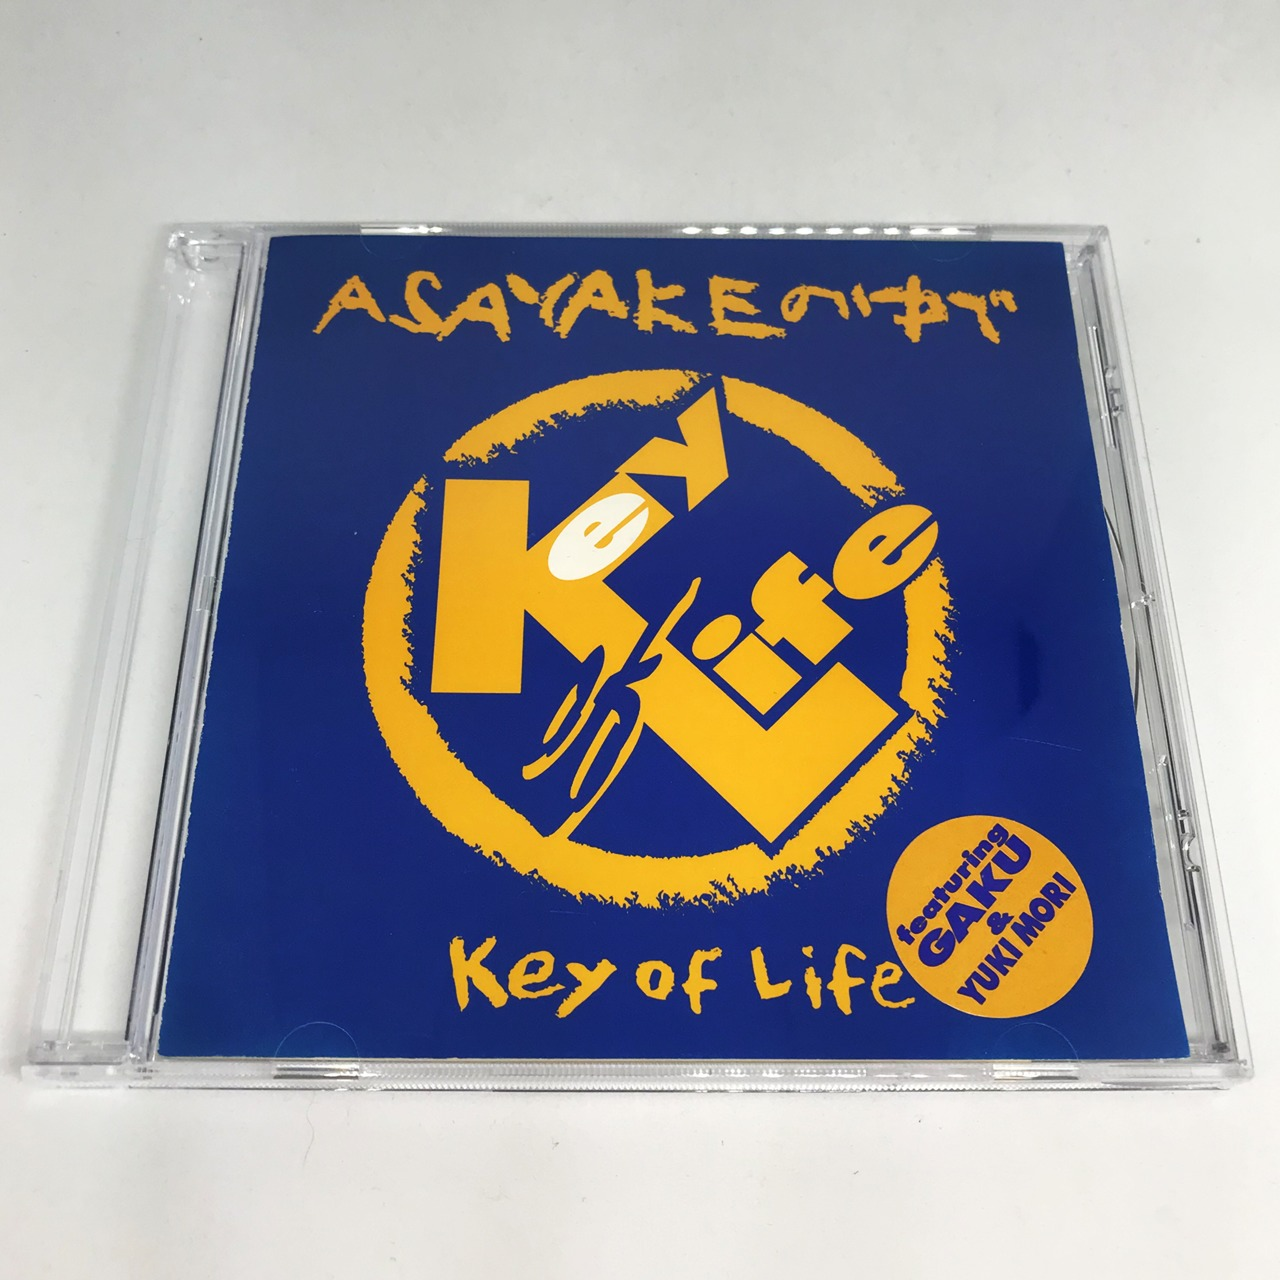 Key of Life / ASAYAKEの中で